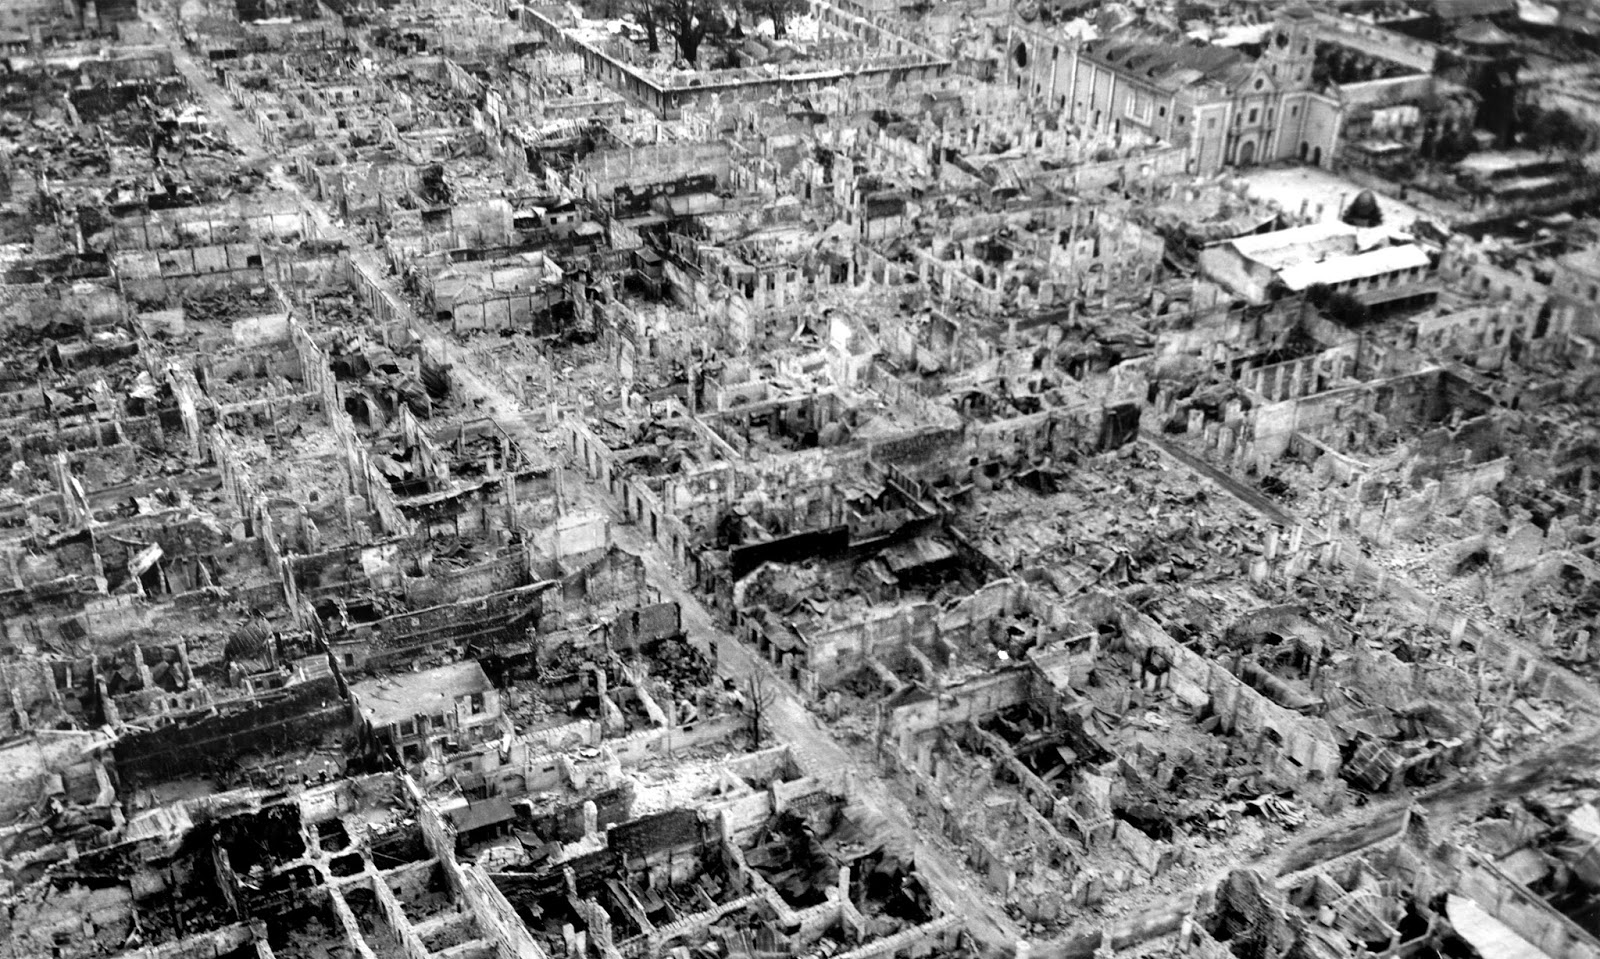 Destruction at the Walled City (Intramuros district) of old Manila after the Battle of Manila. Photo taken in May 1945.